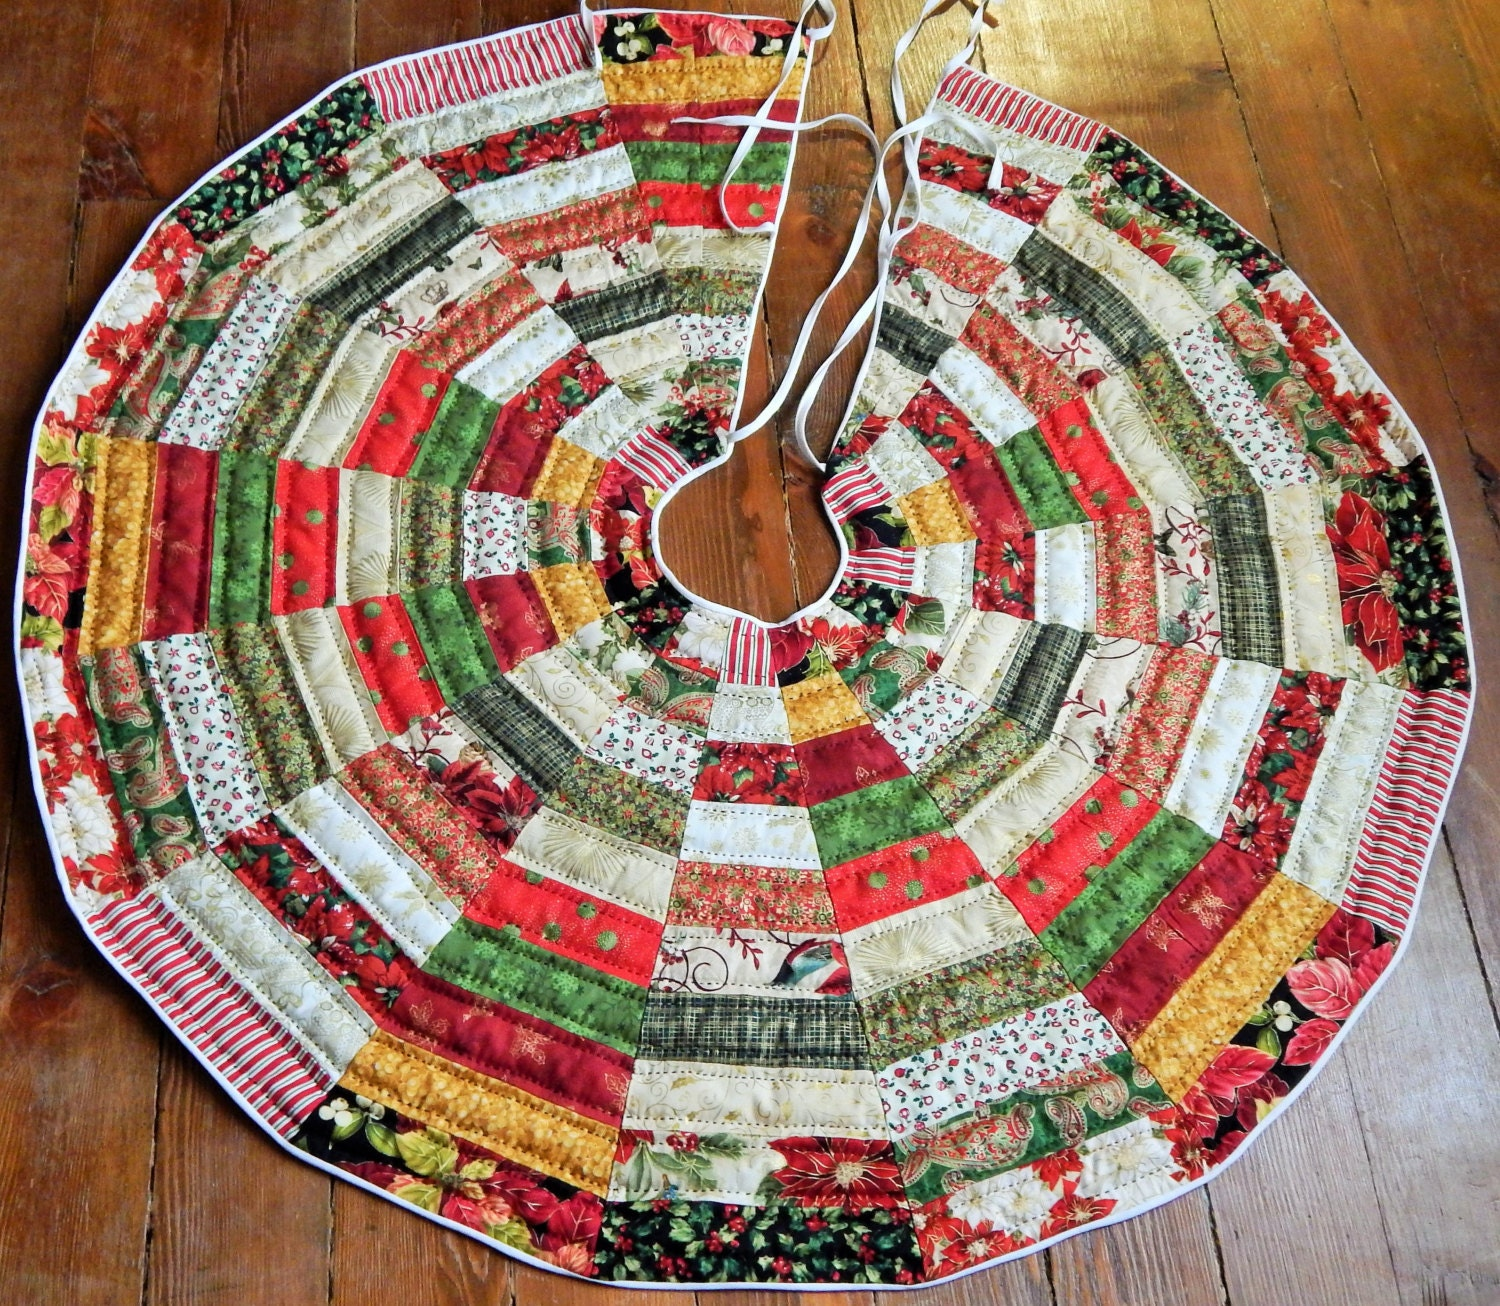 Patchwork Quilted Christmas Tree Skirt Pattern : quilted tree skirt pattern - Adamdwight.com